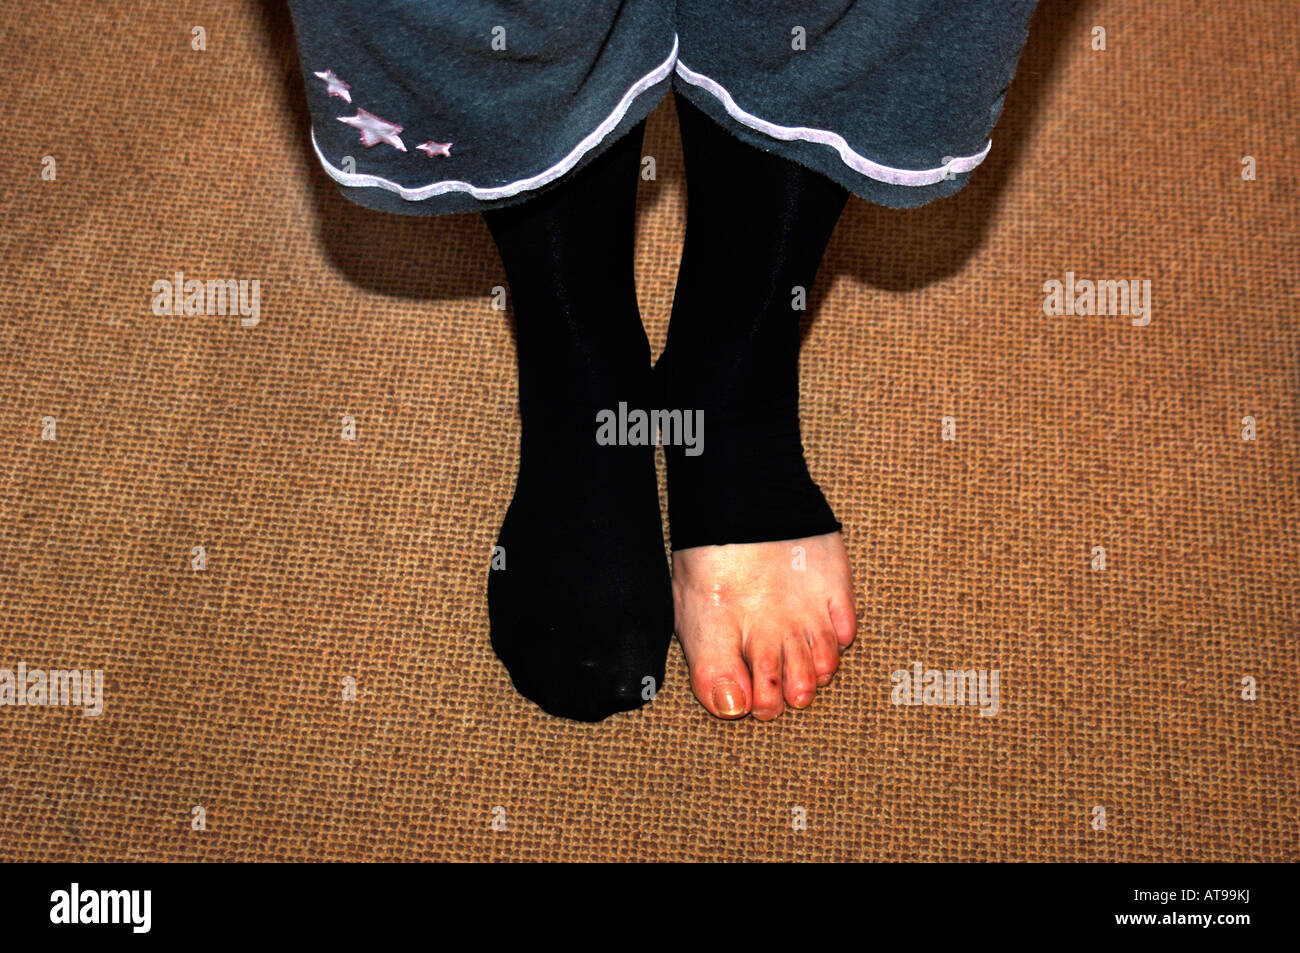 A Woman Wearing Tights,Her Left Foot Is Visable, Due To A Hole In The Material. - Stock Image